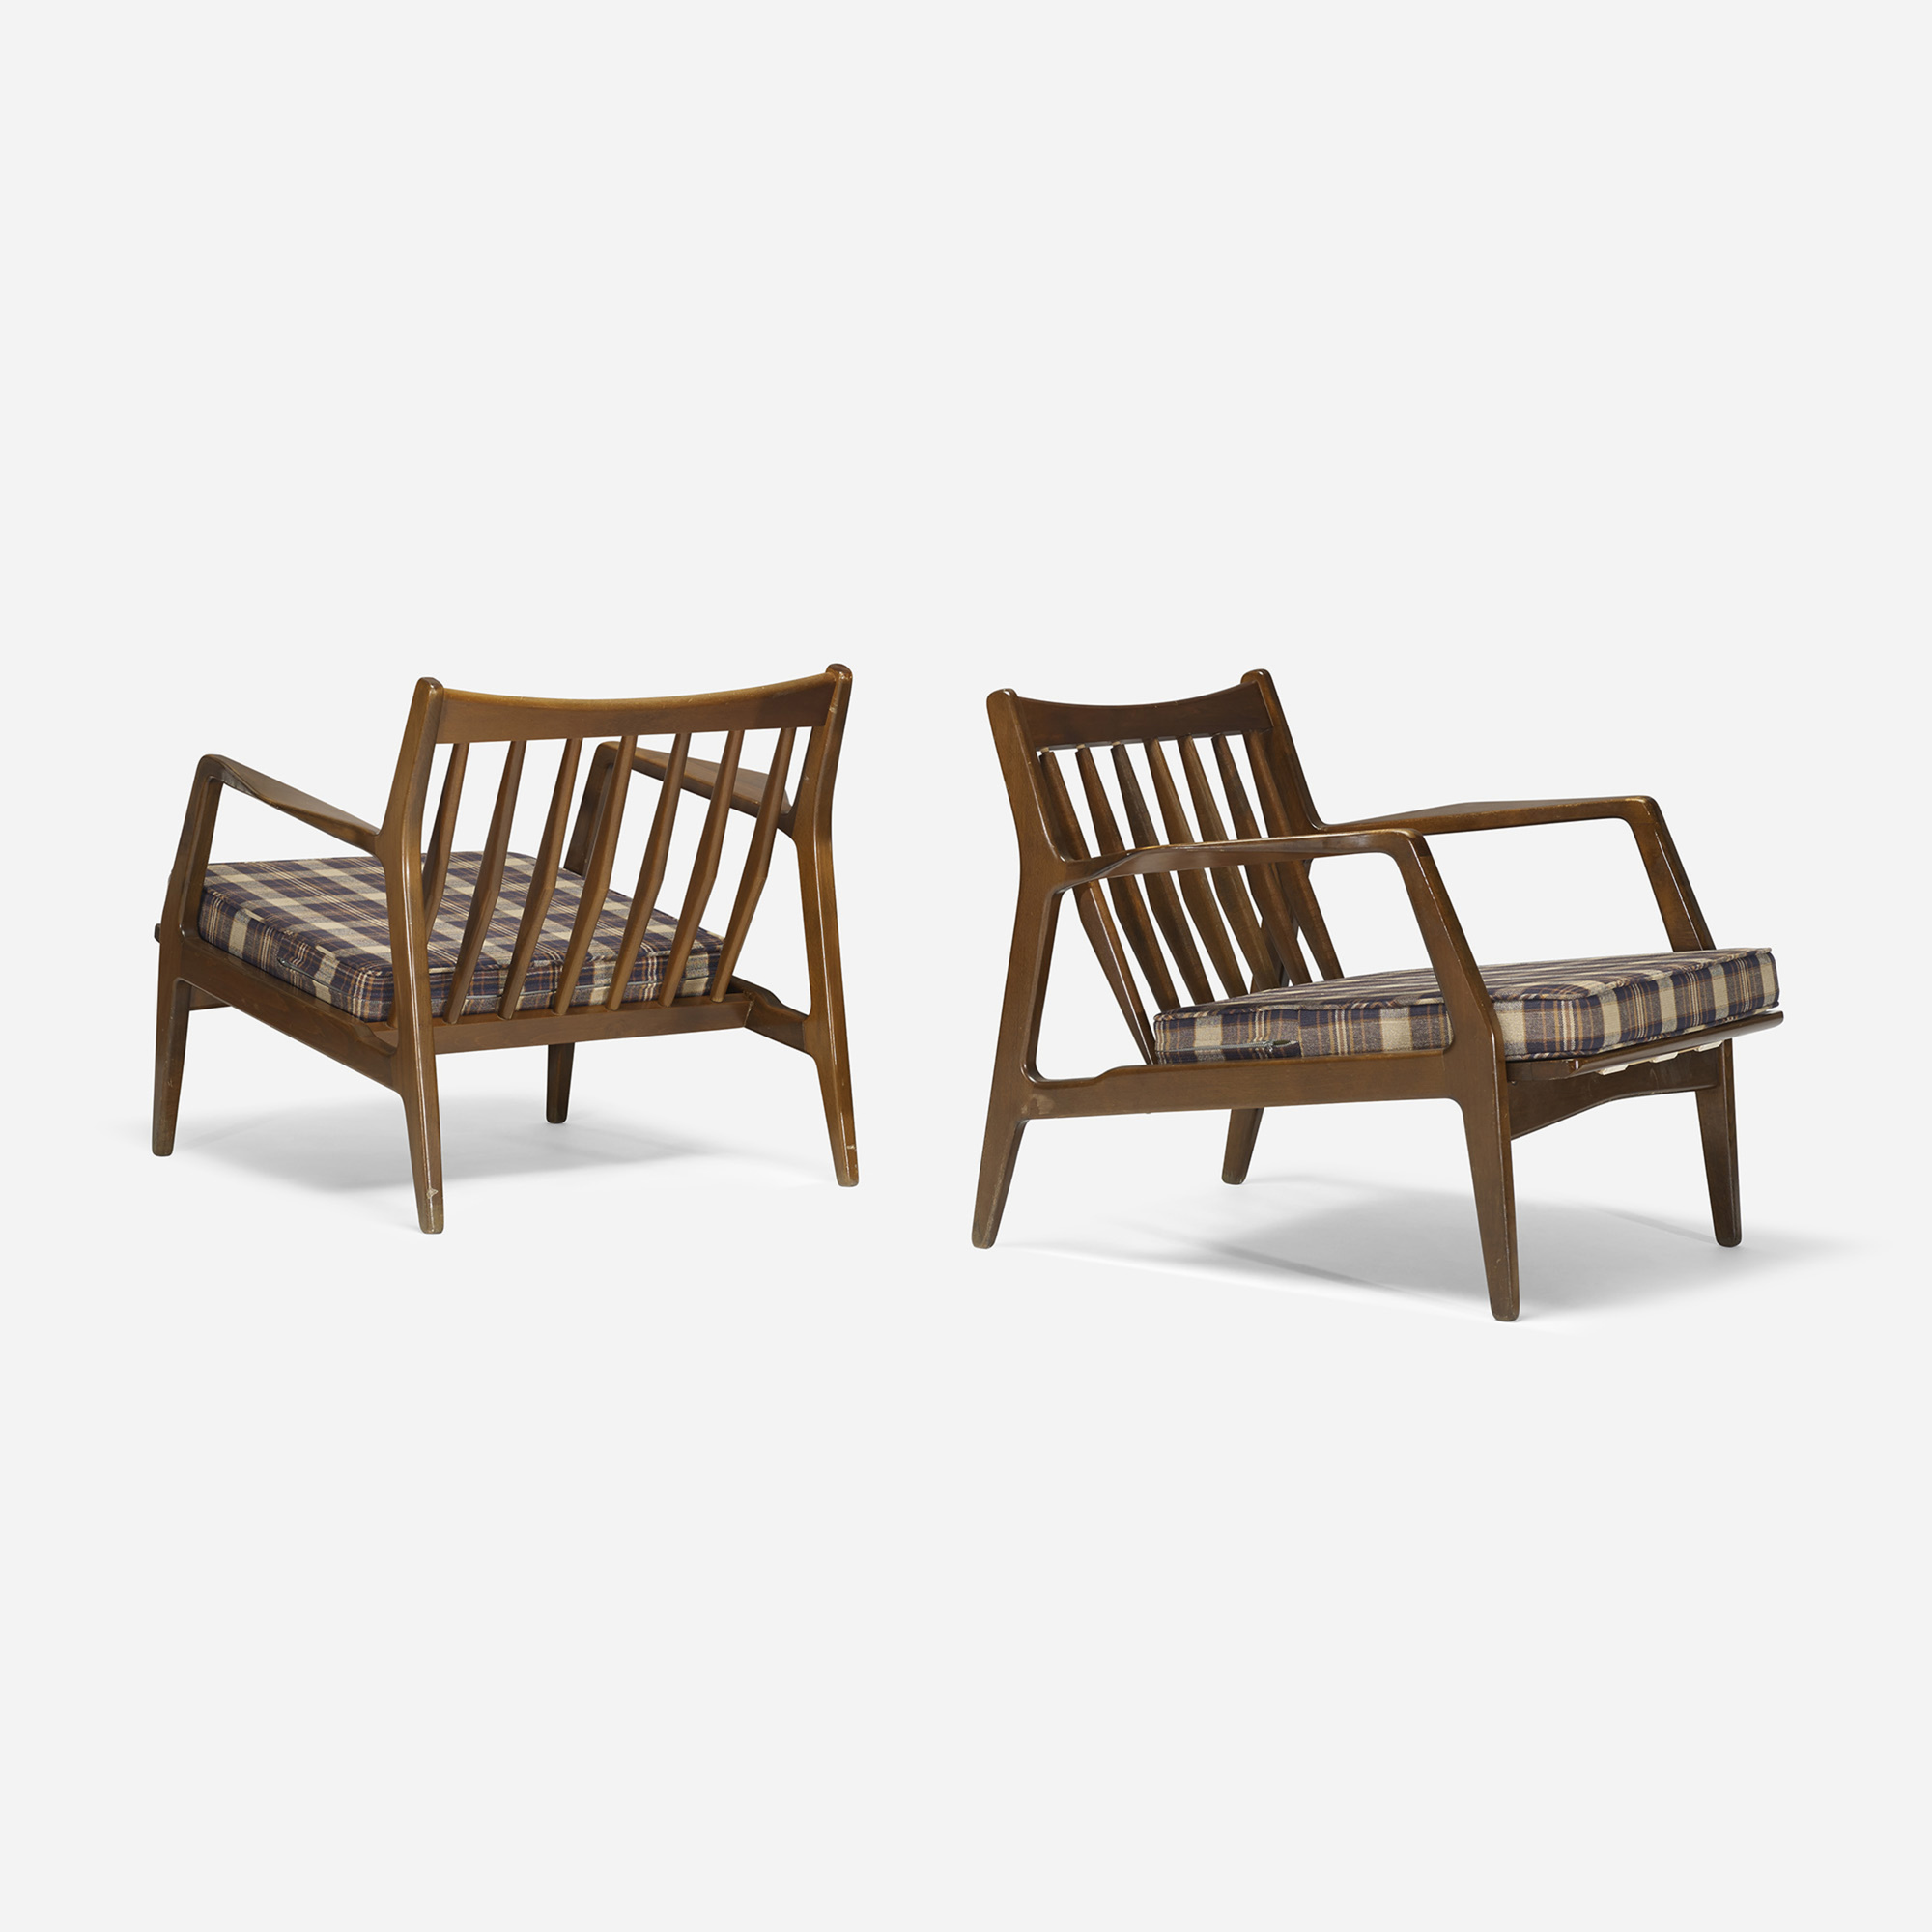 248: Dux / lounge chairs, pair (2 of 4)